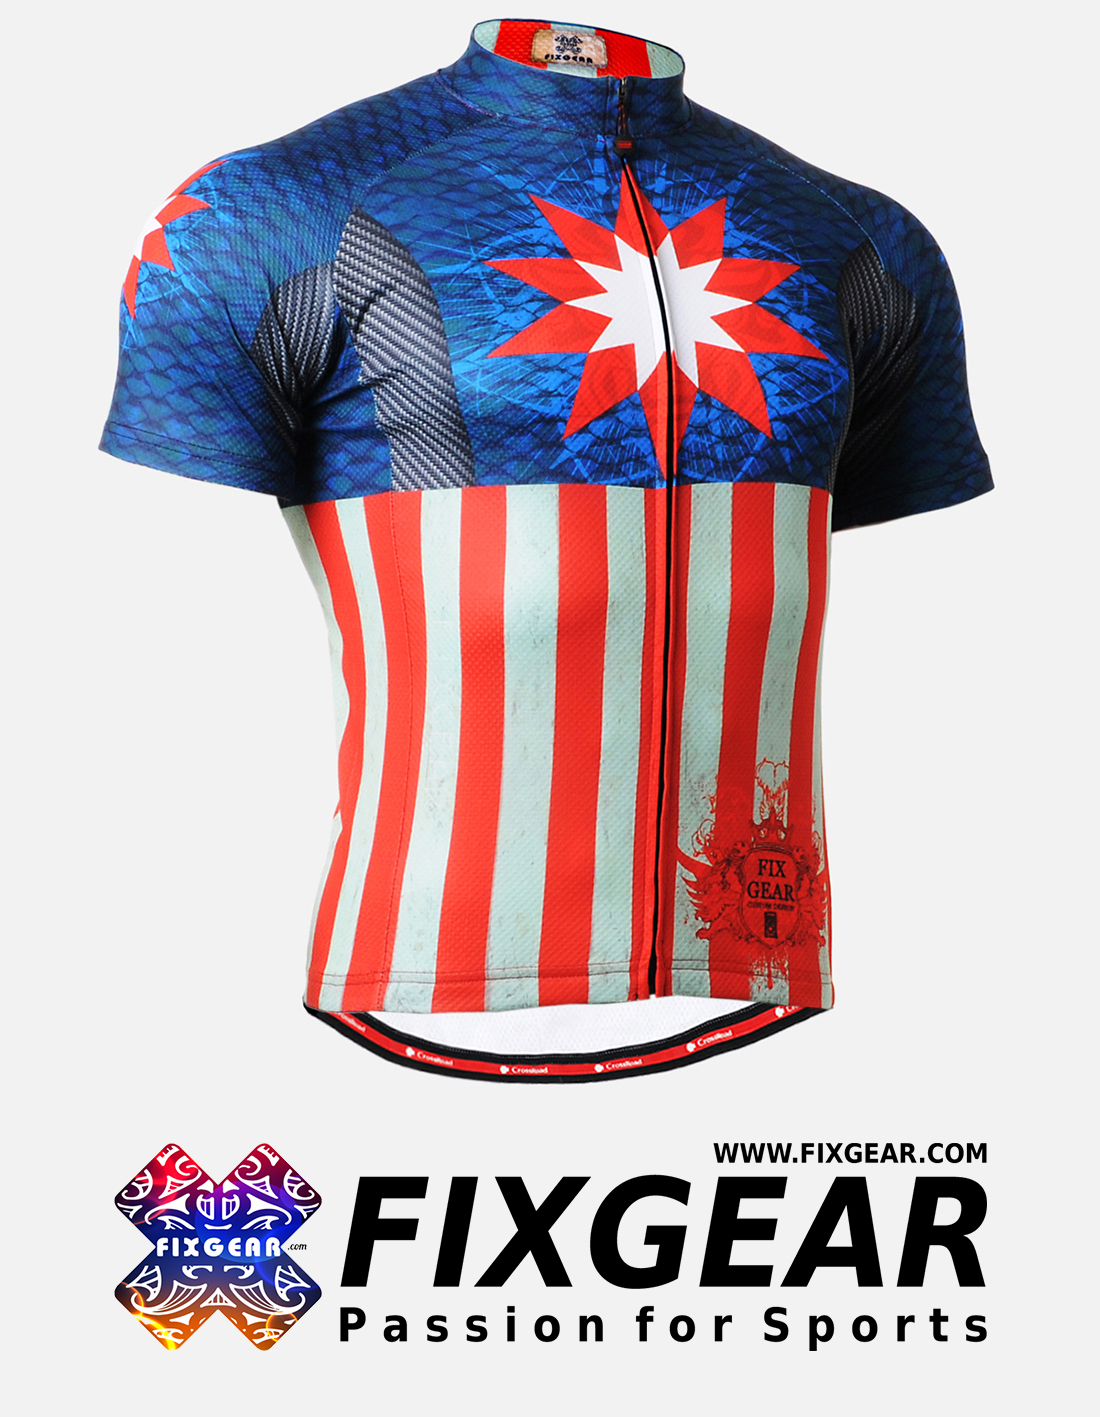 FIXGEAR CS-3702 Men s Cycling Jersey Short Sleeve - FixGear.com 35aabd5f1